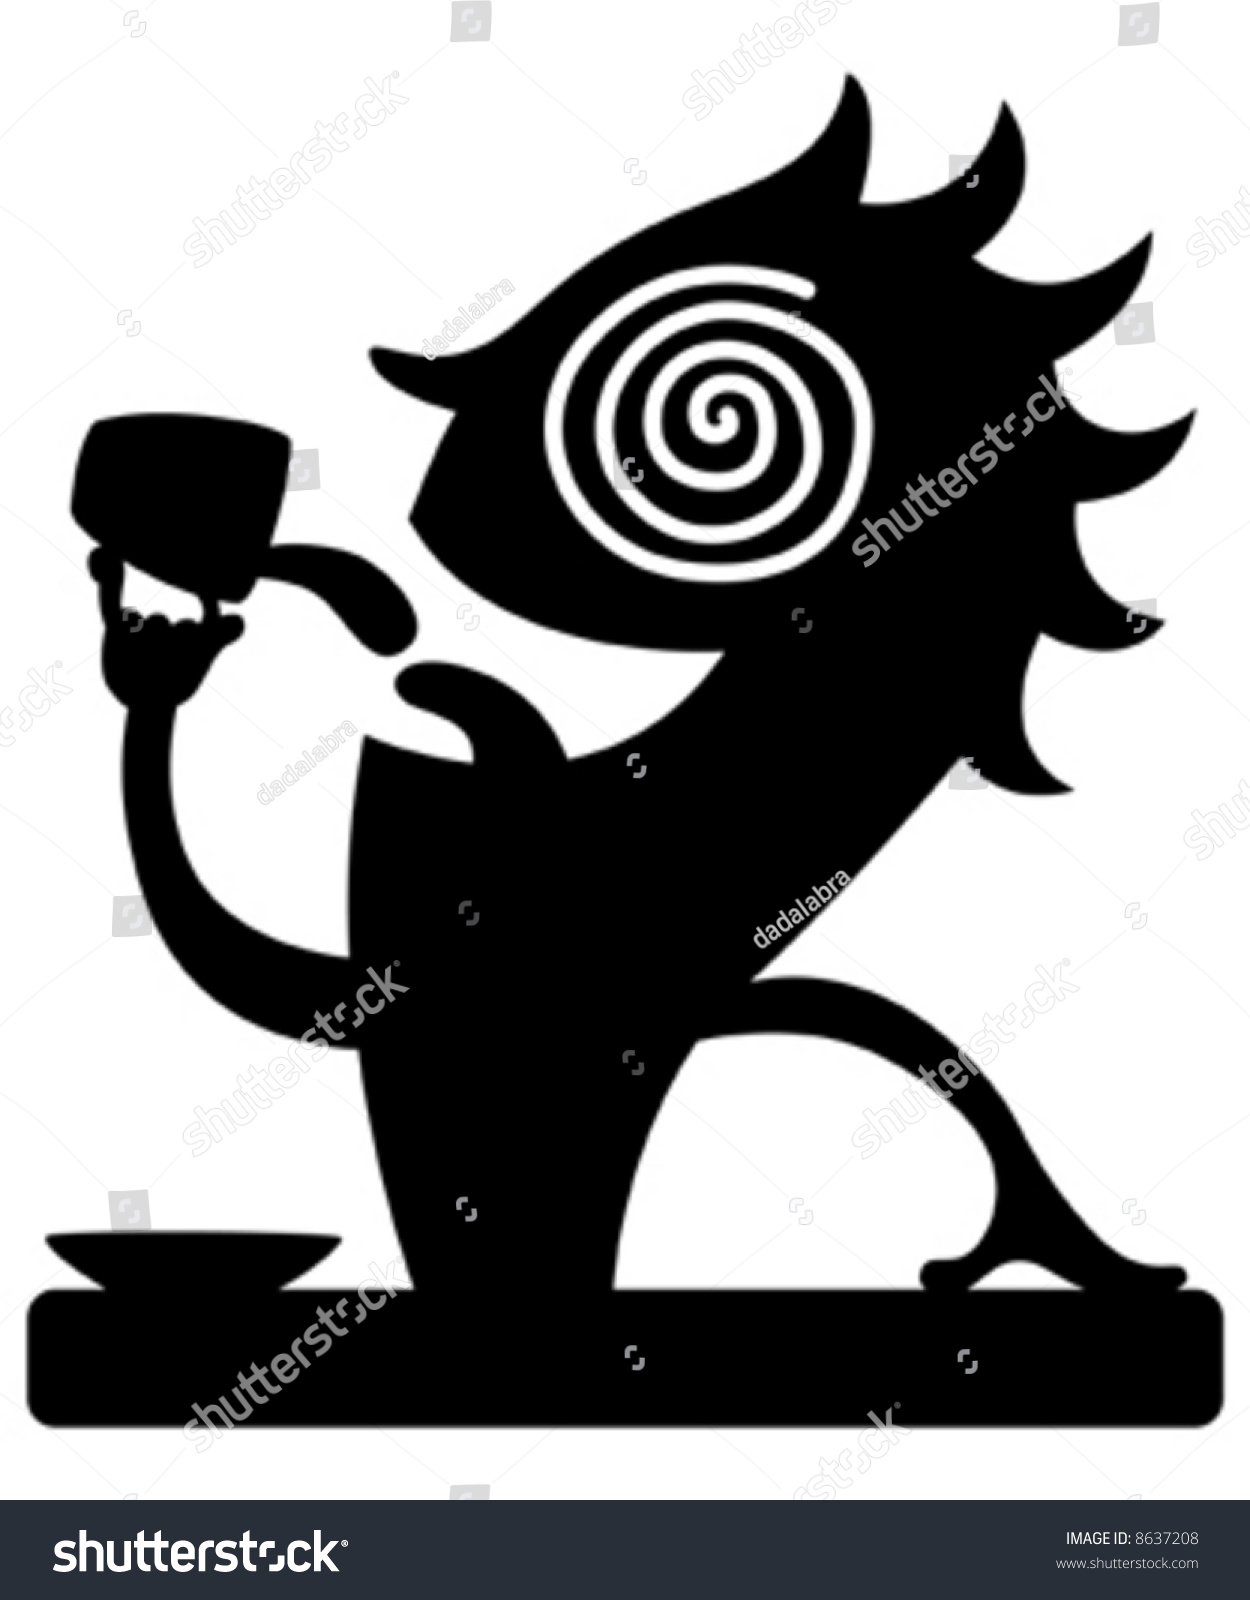 Silhouette Cartoon Caffeine Character Drinking Coffee Stock Vector ...